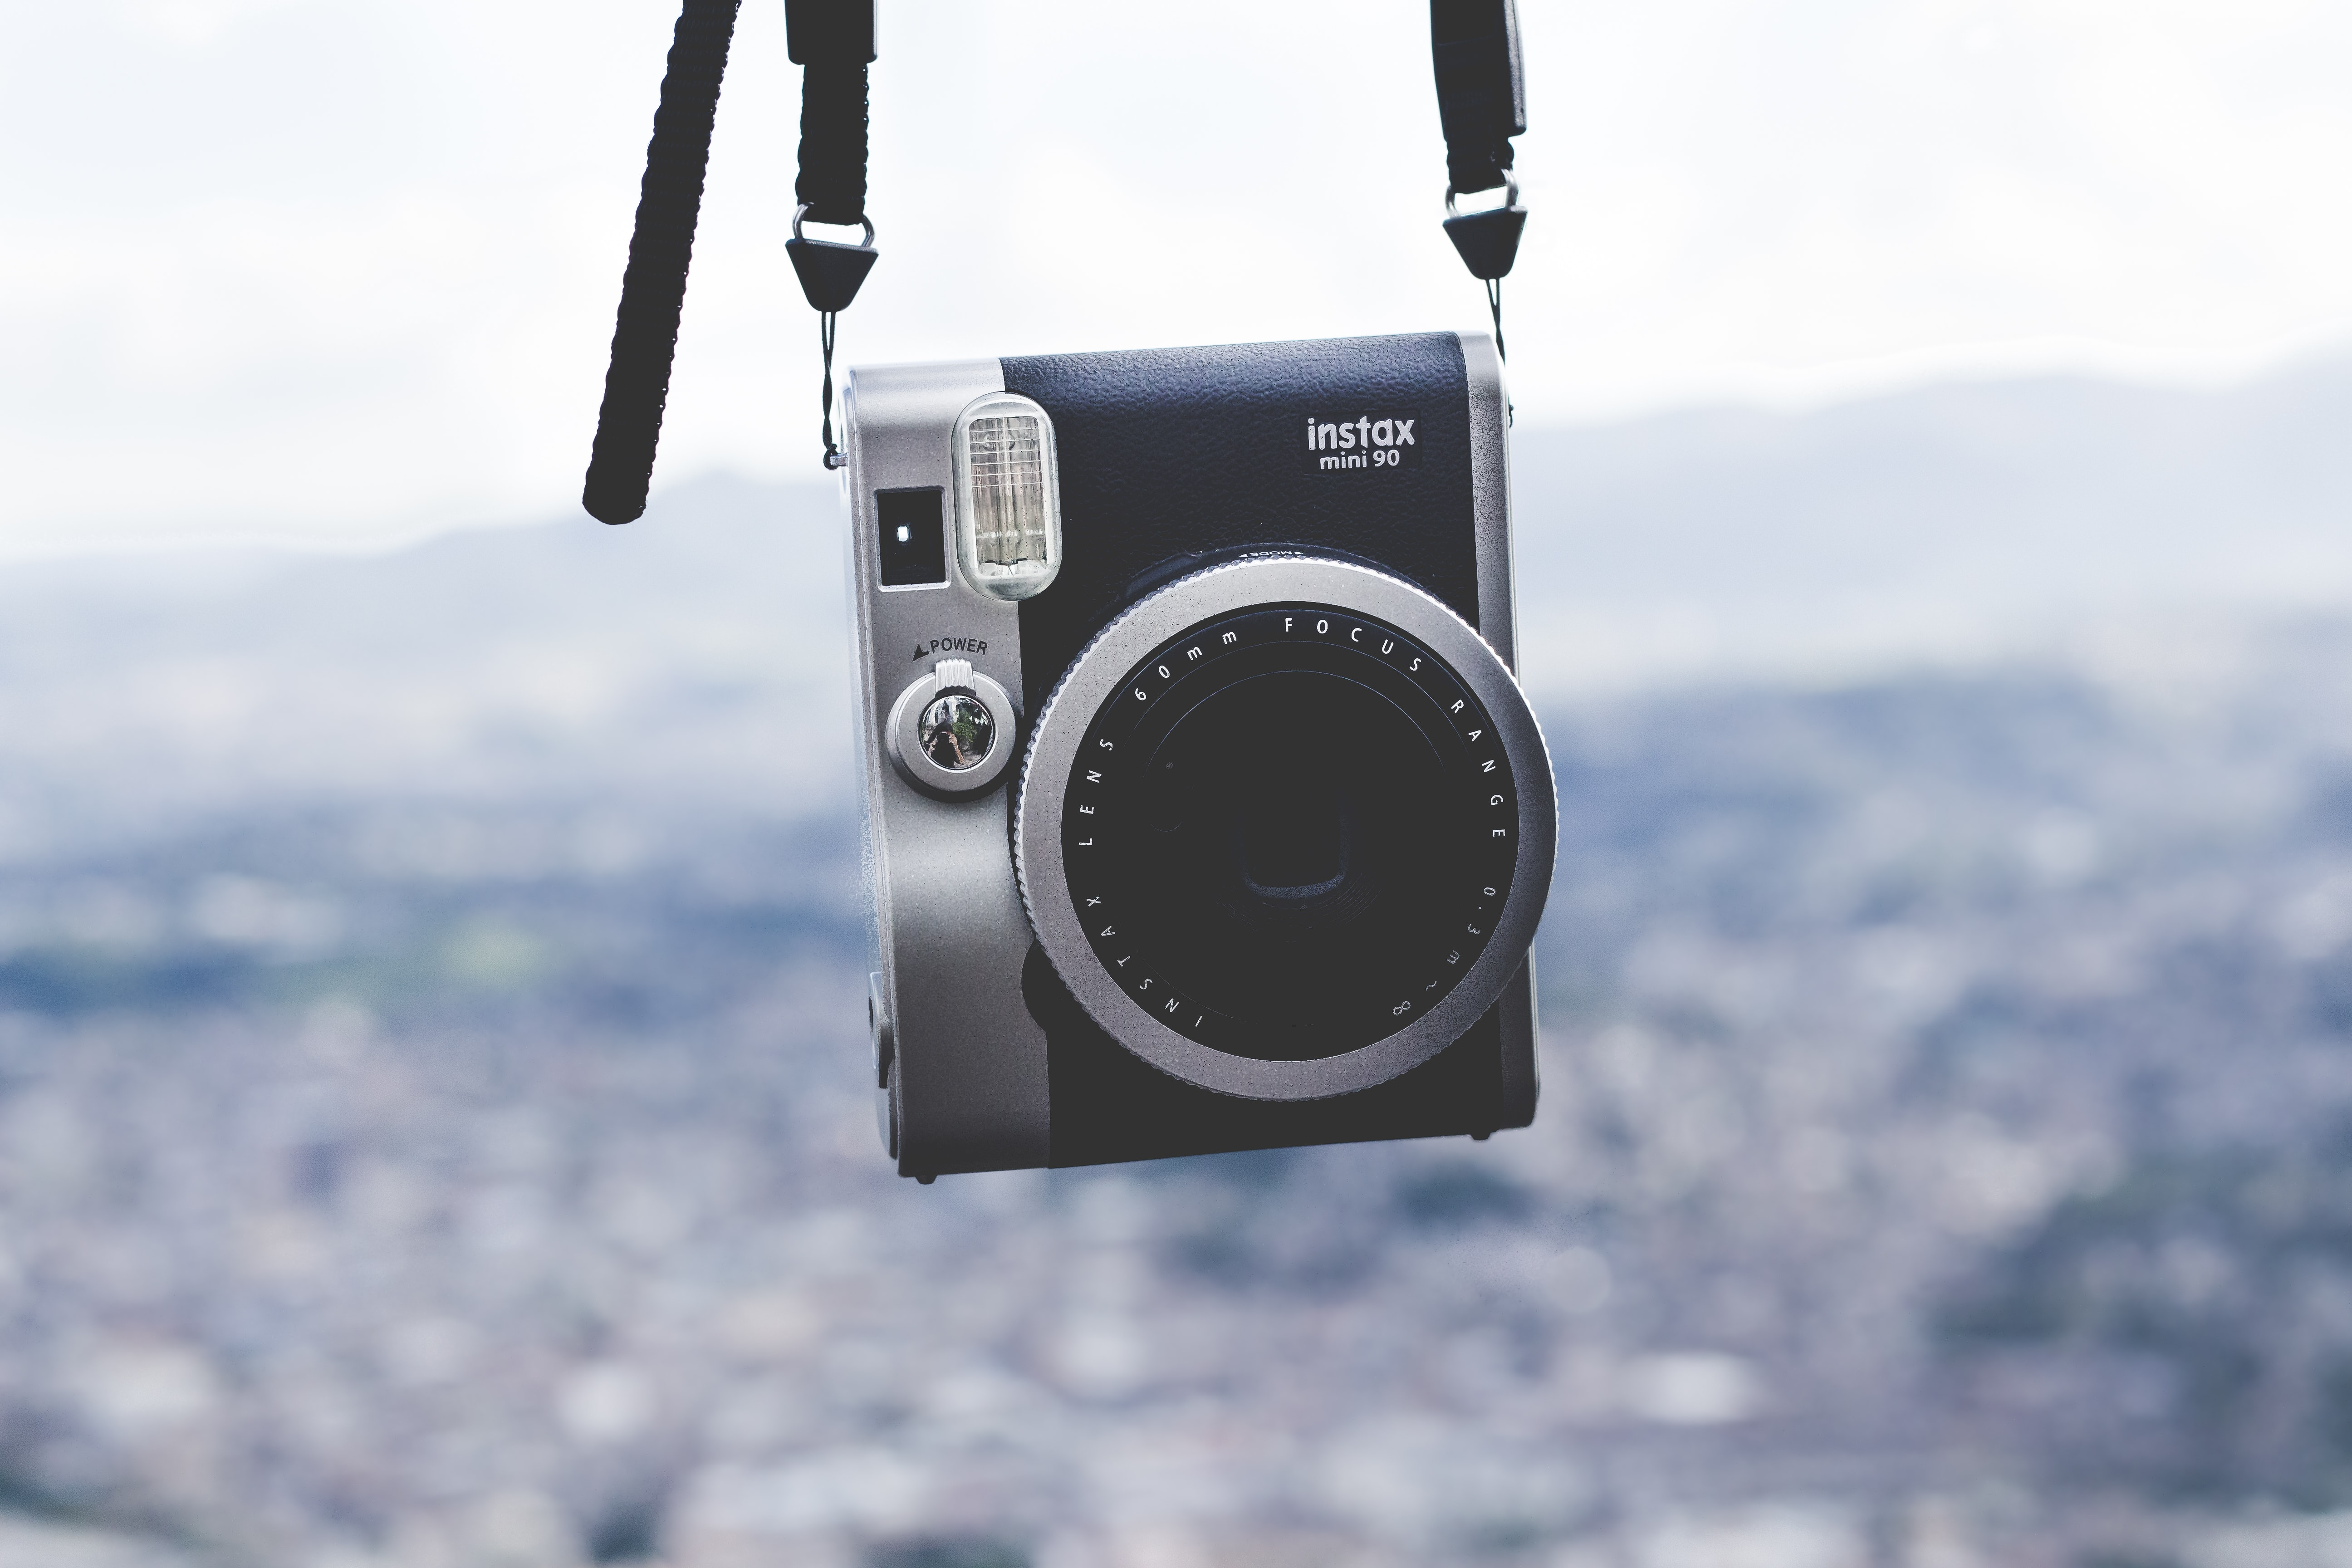 An Instax mini 90 camera dangling from above over a blurred background depicting a city or outdoor scene